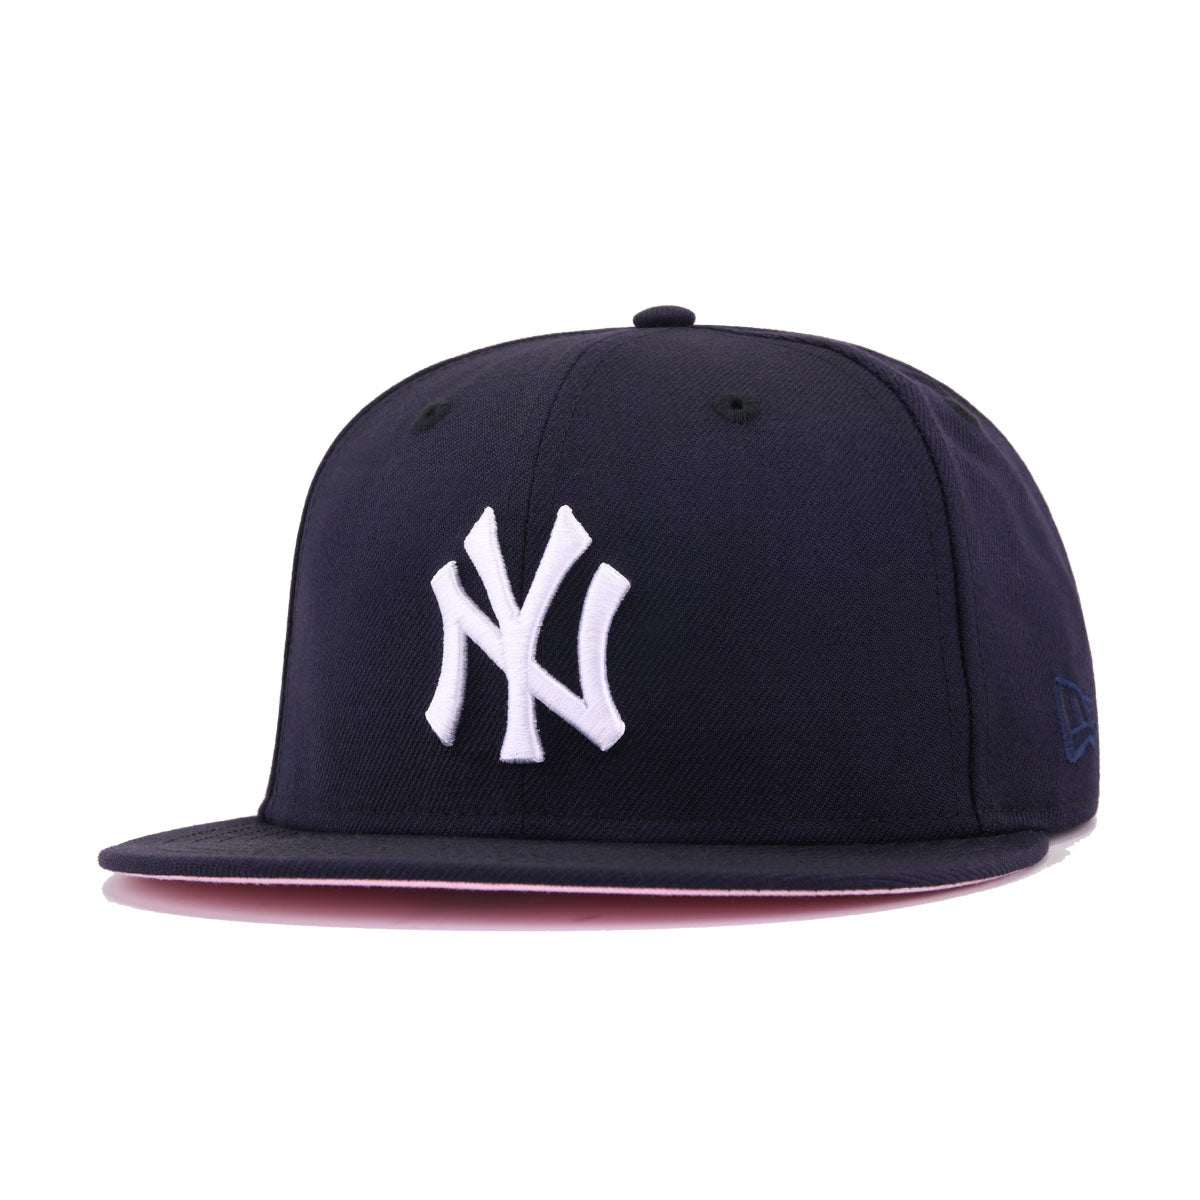 New York Yankees Navy Pink Bottom 1999 World Series New Era 9Fifty Snapback